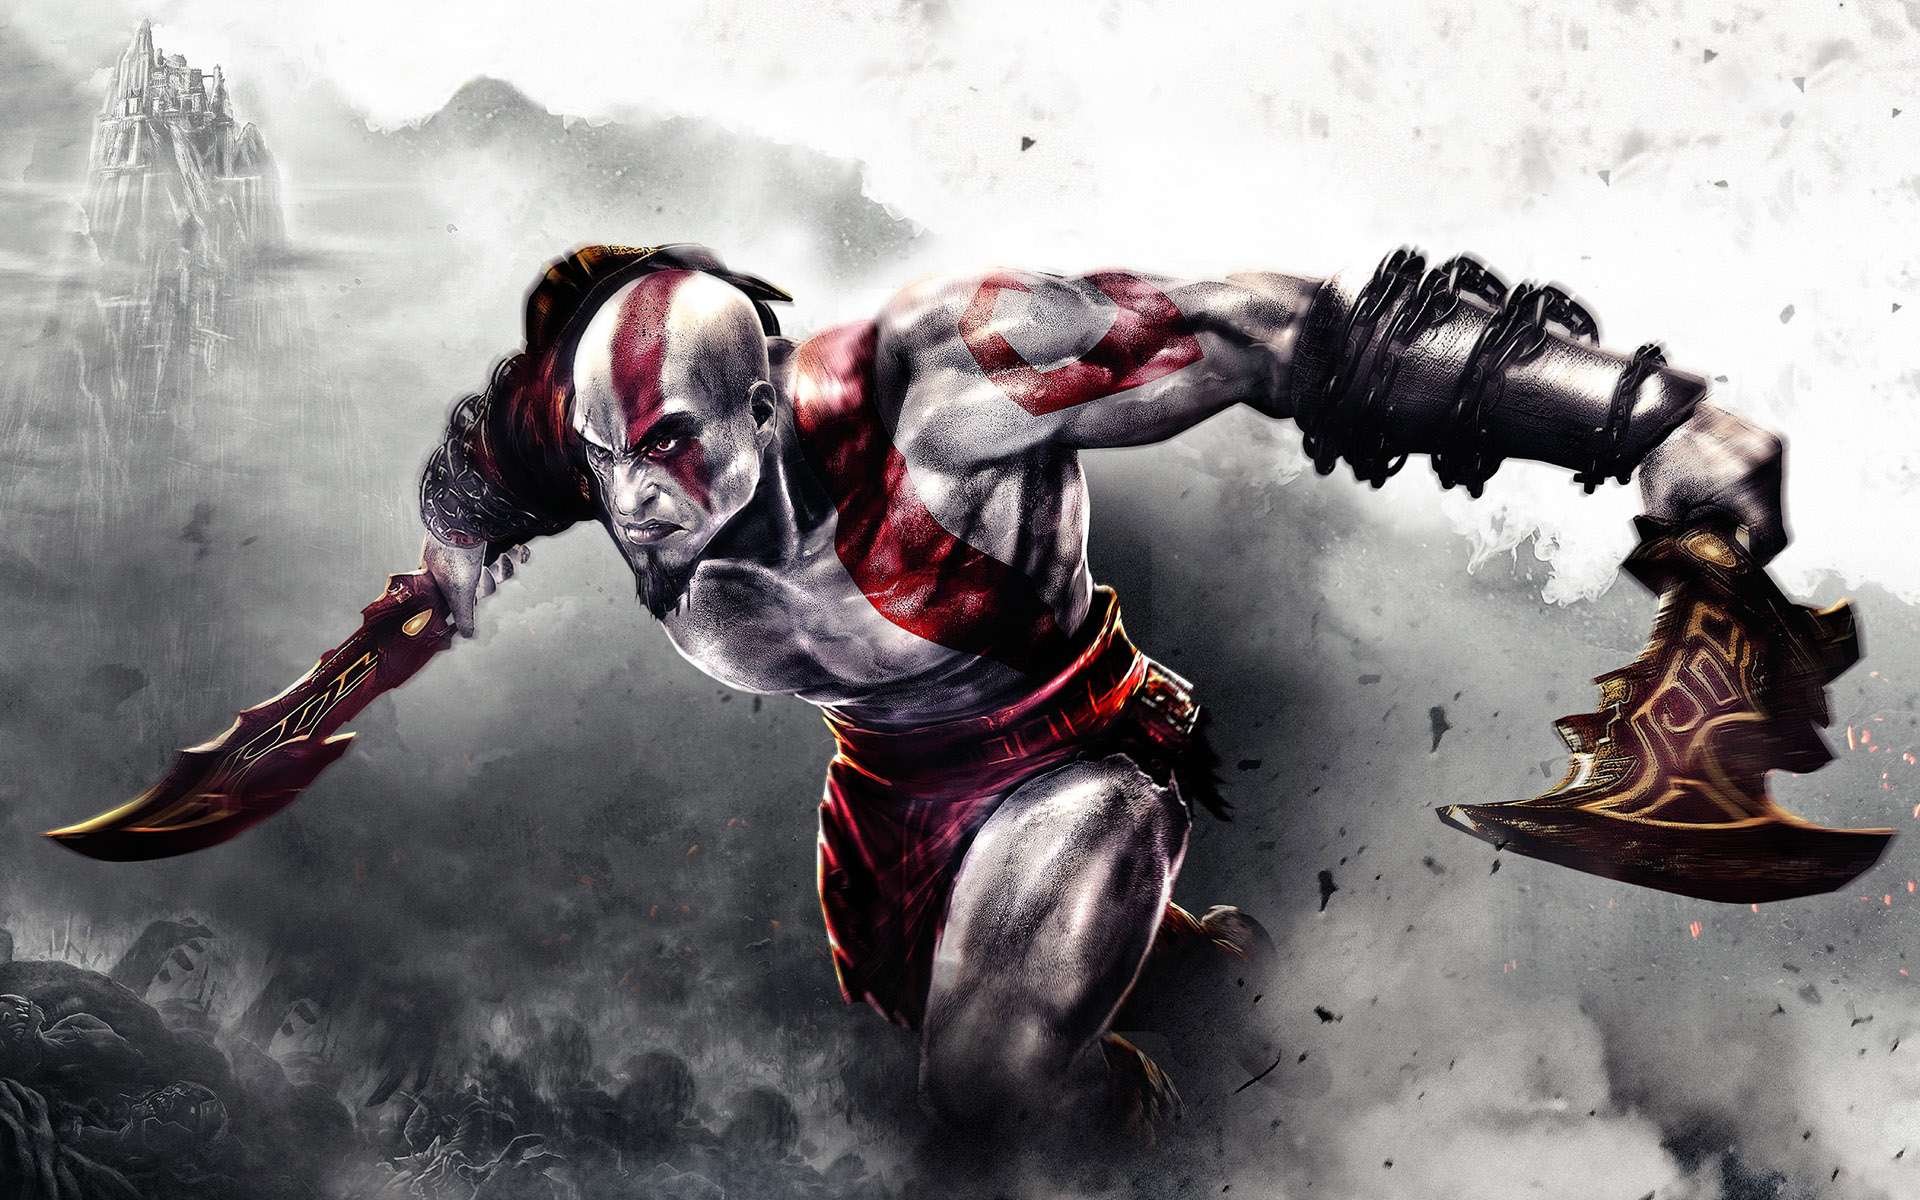 God Of War Sketch of the game